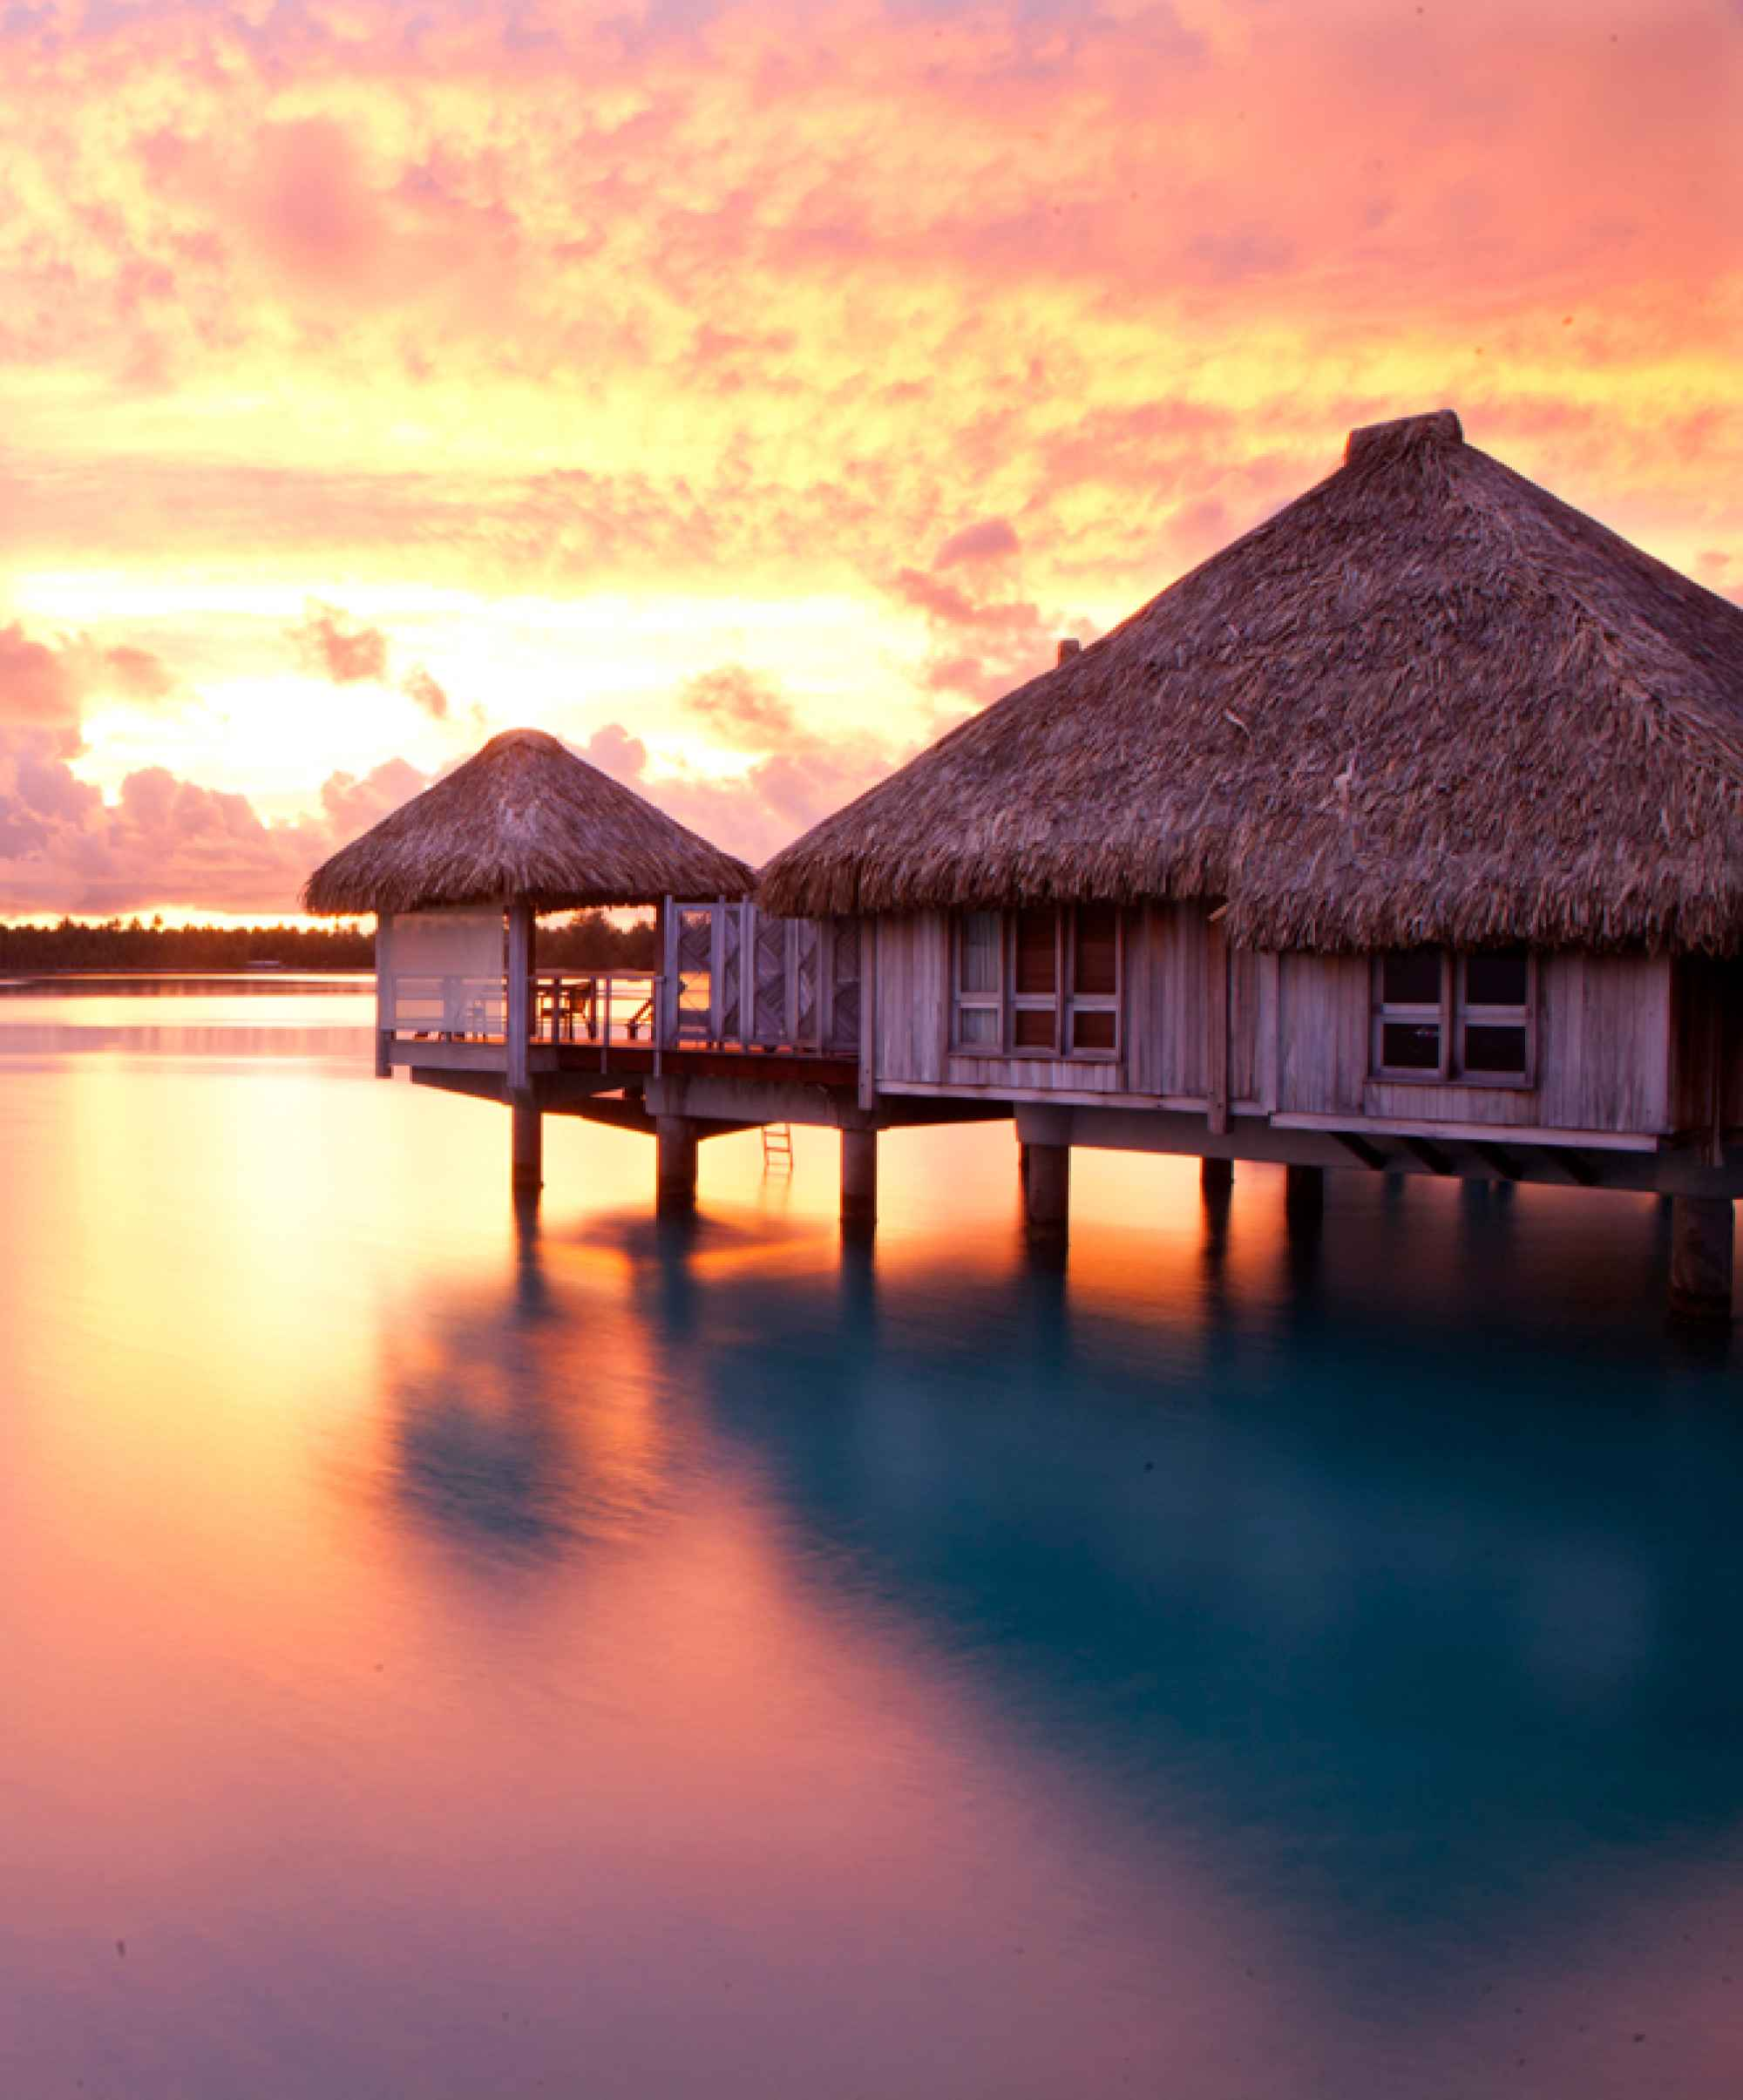 3. The Islands of Tahiti